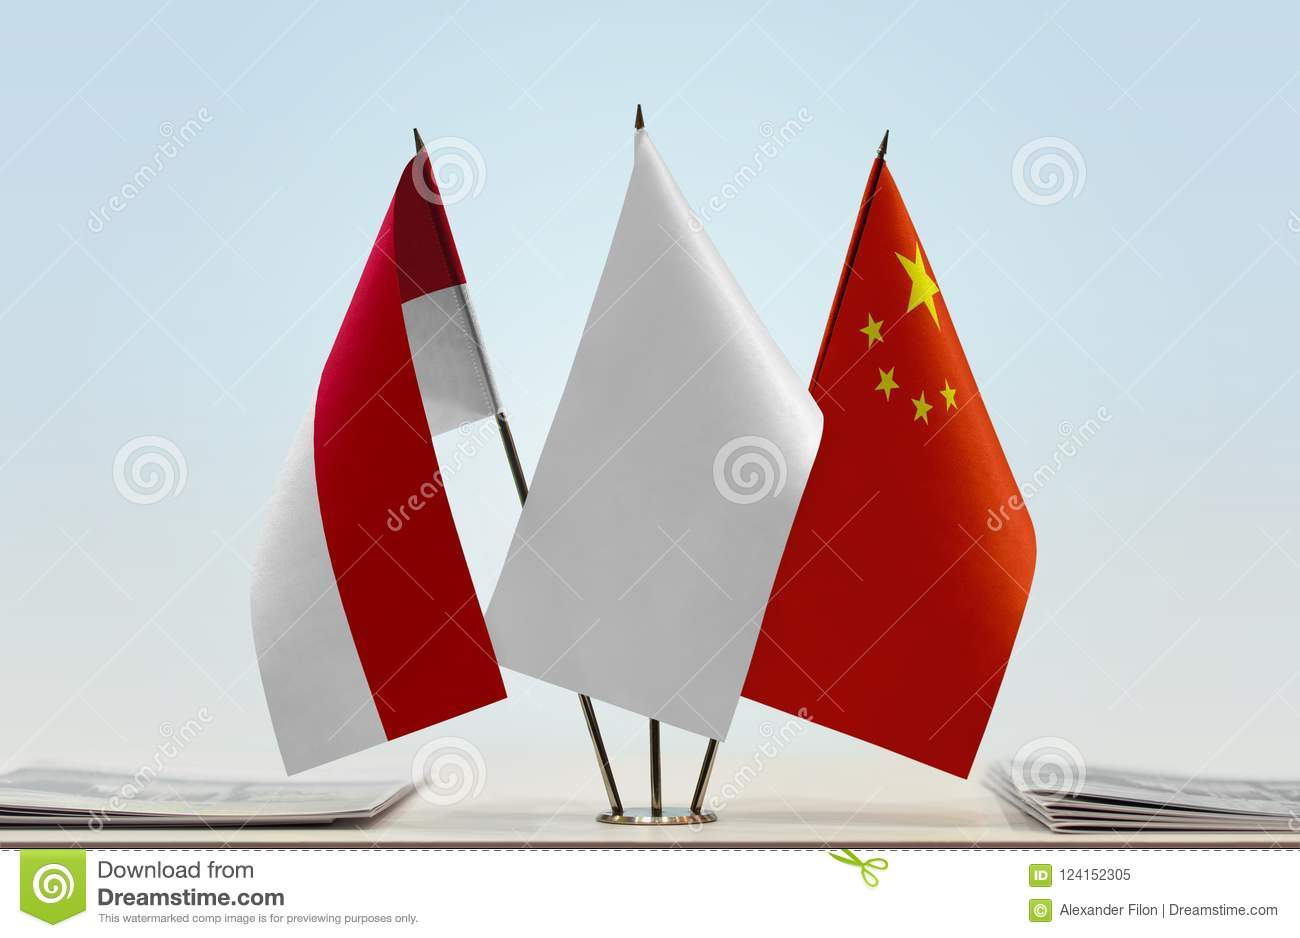 Flags of Monaco and China